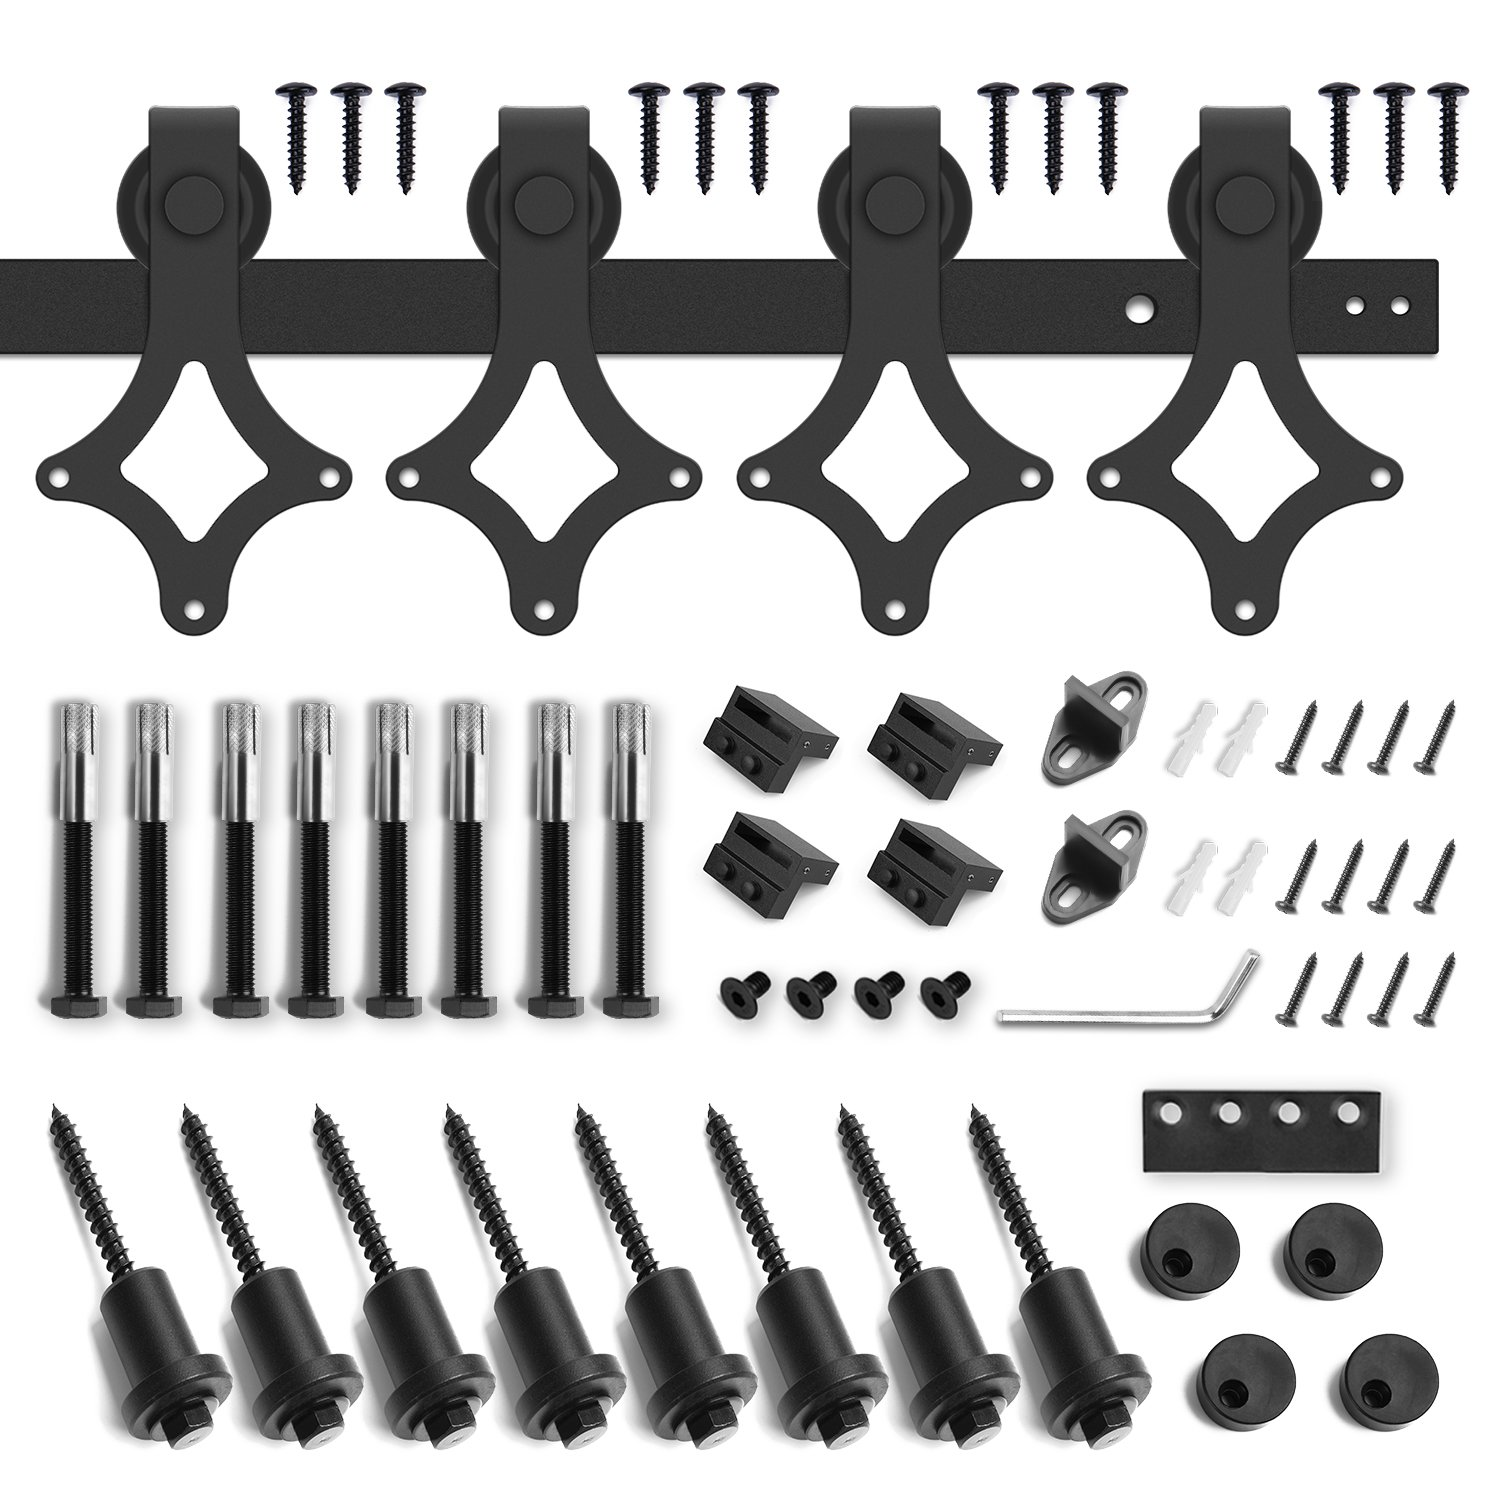 10ft Heavy Duty Sturdy Double Door Sliding Barn Door Hardware Kit - Super Smoothly and Quietly - Simple and Easy to Install - Includes Step-by-Step Instruction -Fit 30'' Wide Door(Rhombic Shape Hanger) by SMARTSTANDARD (Image #4)